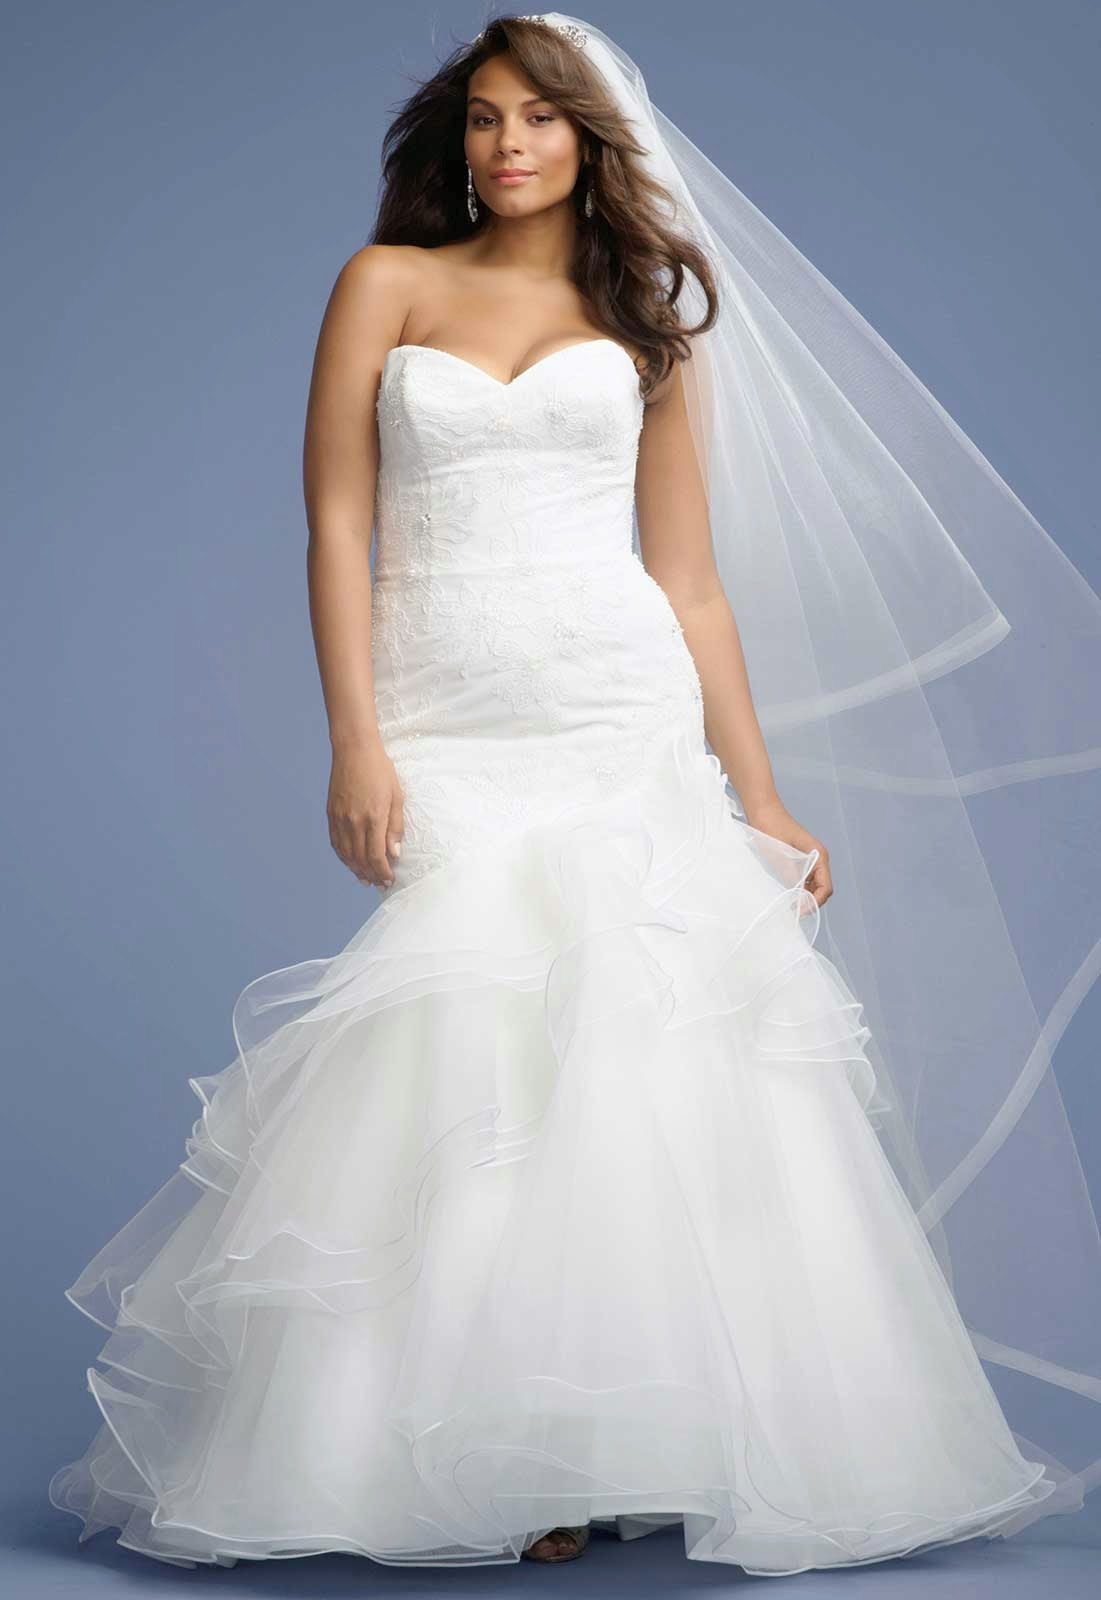 Mermaid Plus Size Wedding Dresses Concepts Ideas Photos HD